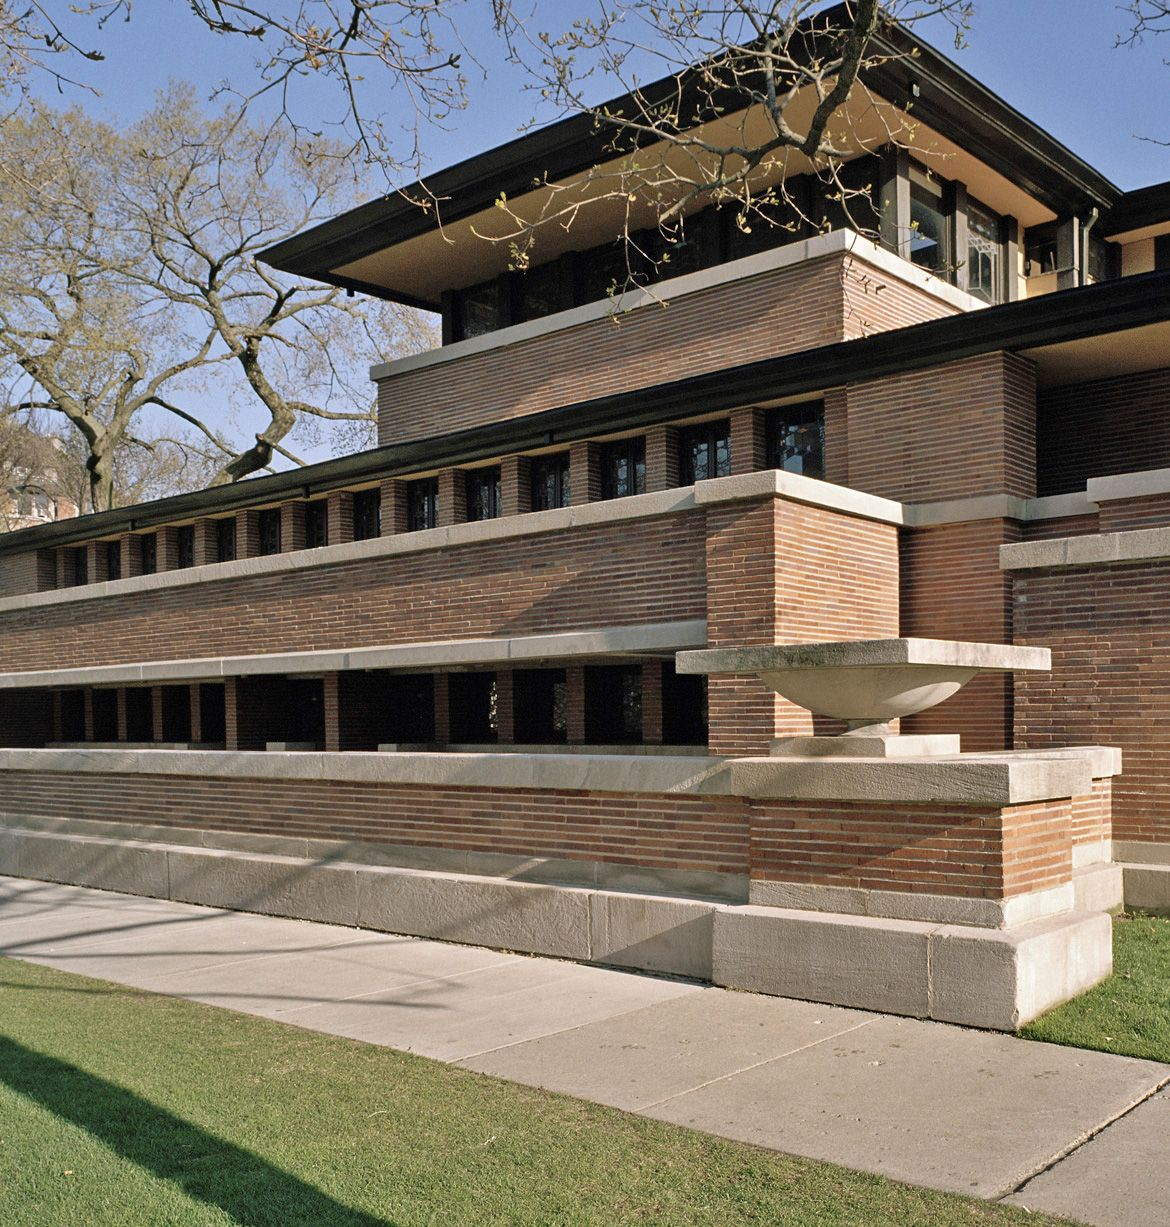 frank lloyd wright robie house hyde park chicago 1909 arch pinterest architektur. Black Bedroom Furniture Sets. Home Design Ideas